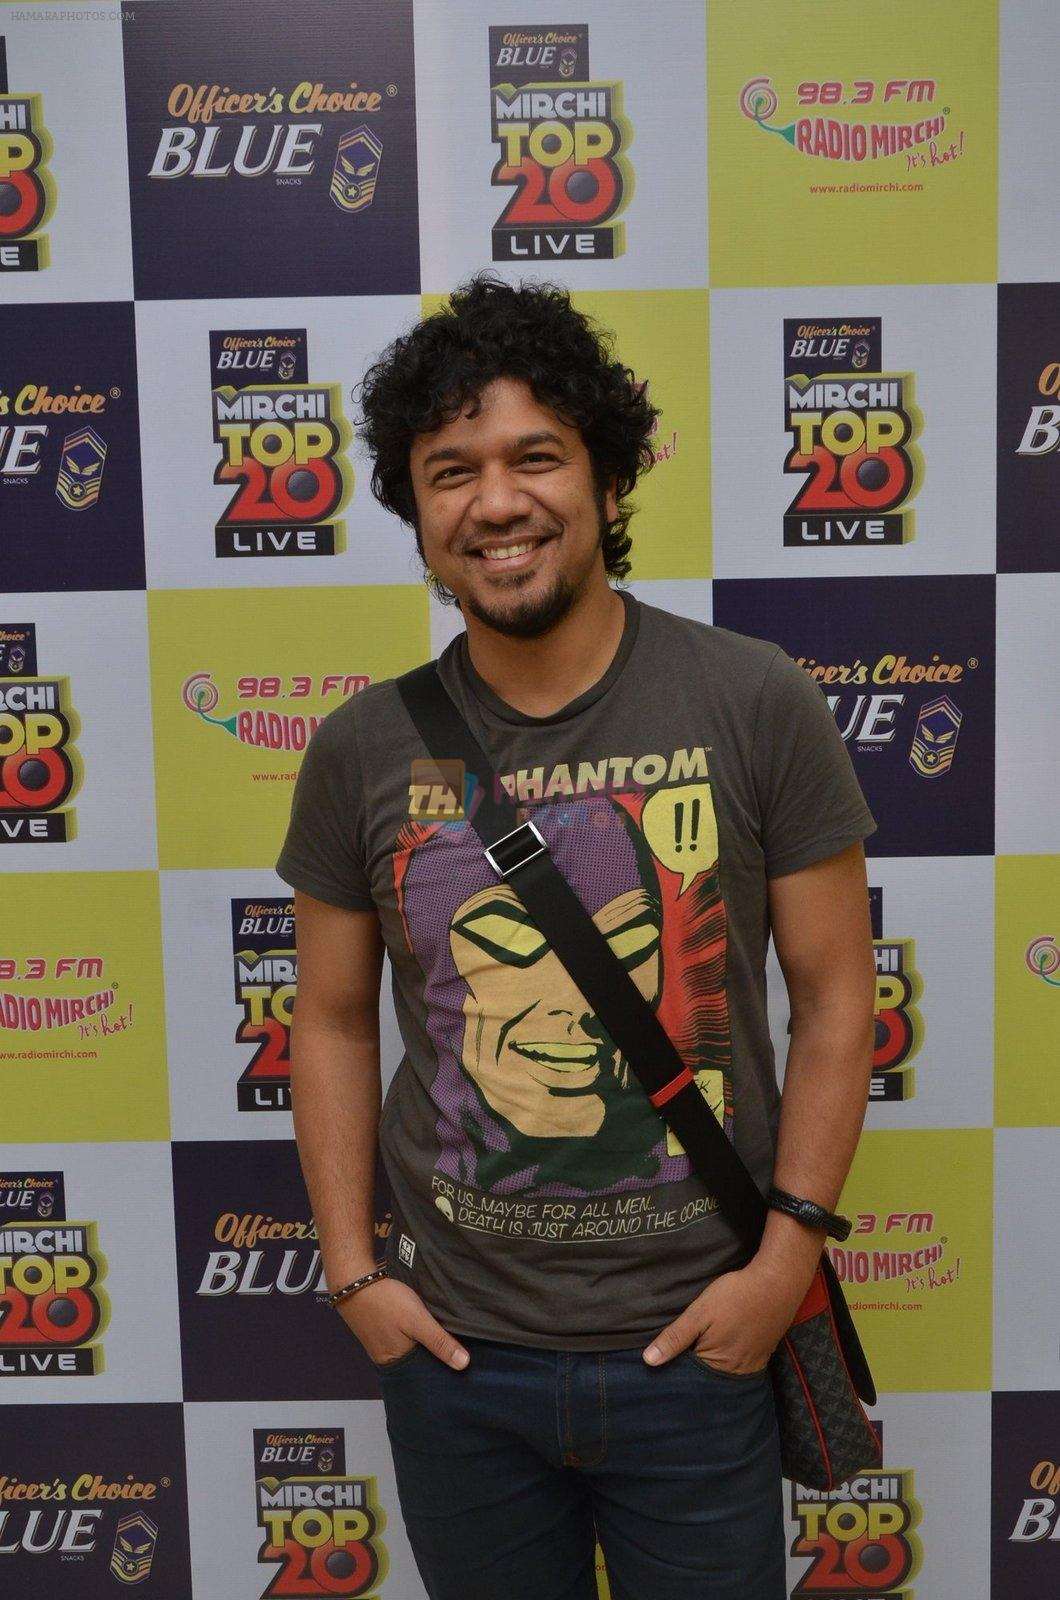 Papon at the Announcement Of Mirchi Top 20 Concert on 10th Oct 2016